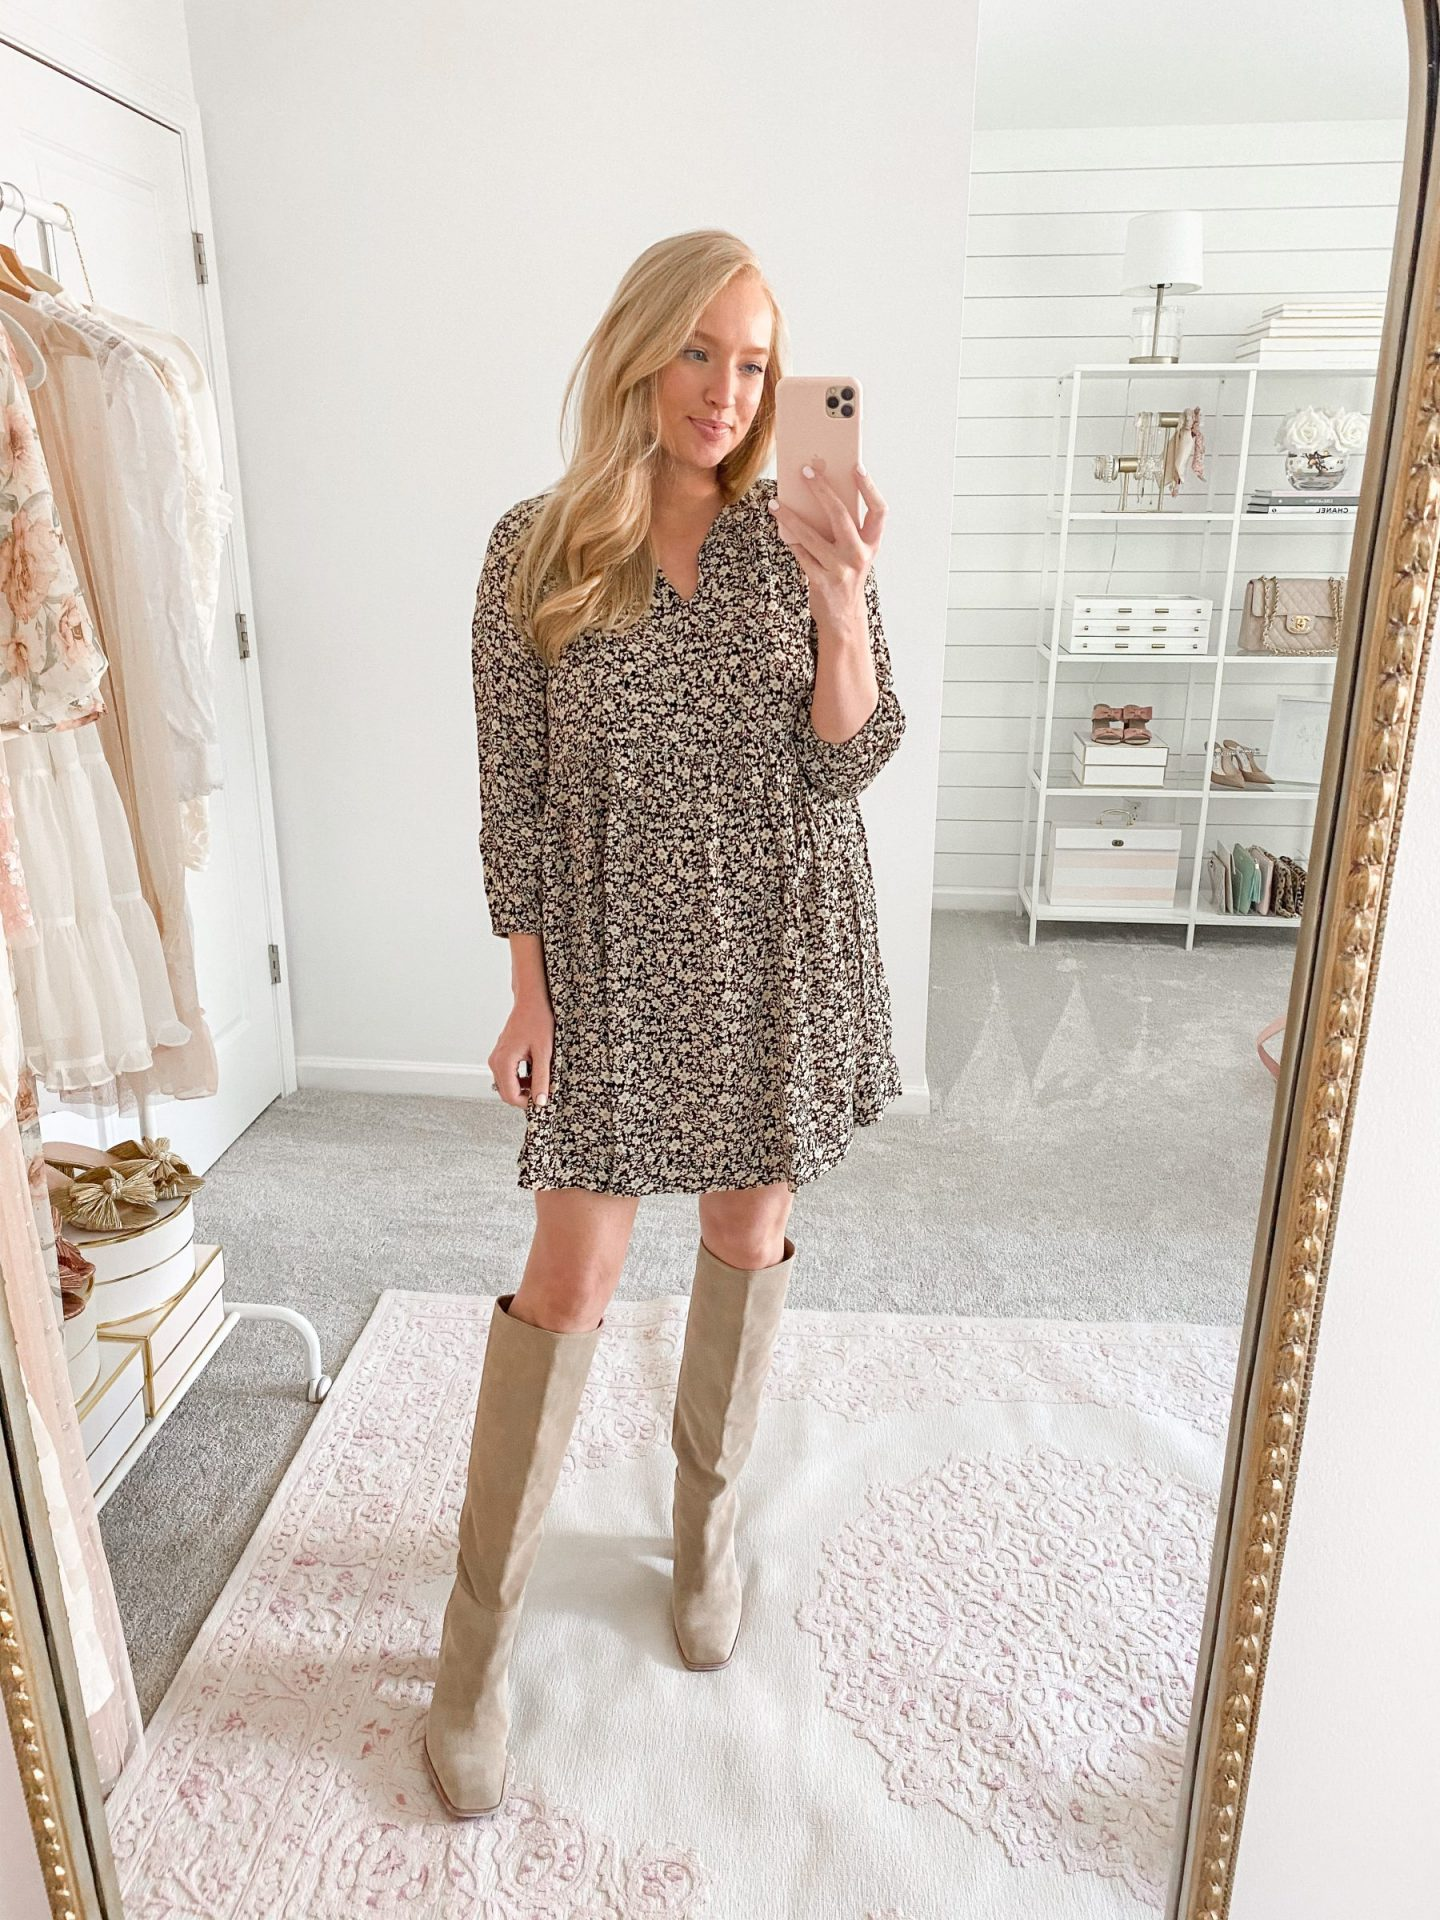 Floral dress fall outfit idea